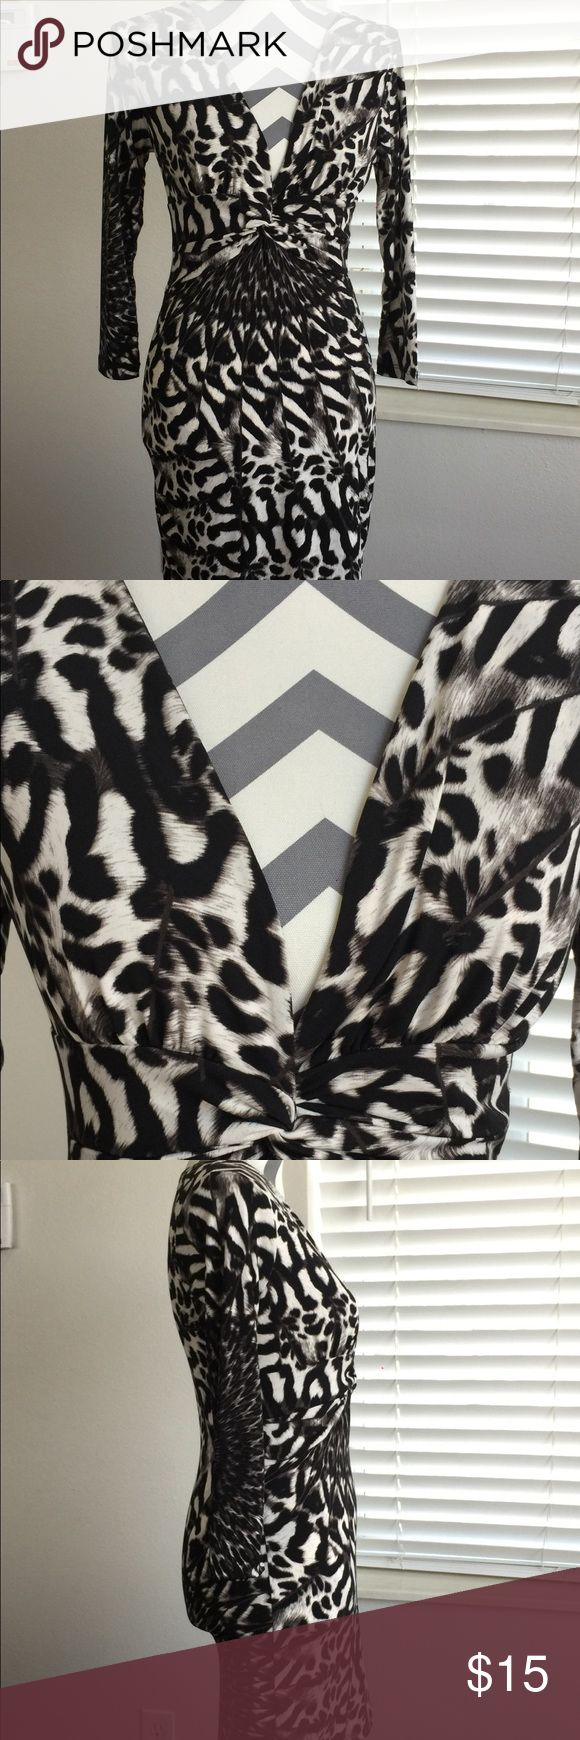 """Animal Print Bodycon Dress NWOT Black and white Animal Print bodycon dress shows off your figure! Plunging V-Neck with center ruching. 3/4 sleeves. Length approximately 24"""" from underarm to hem. Material is polyester, spandex and elastano. Size Medium. Bought in California boutique but Never worn. Perfect for clubs, night out, or special occasion Symphony Dresses Mini"""